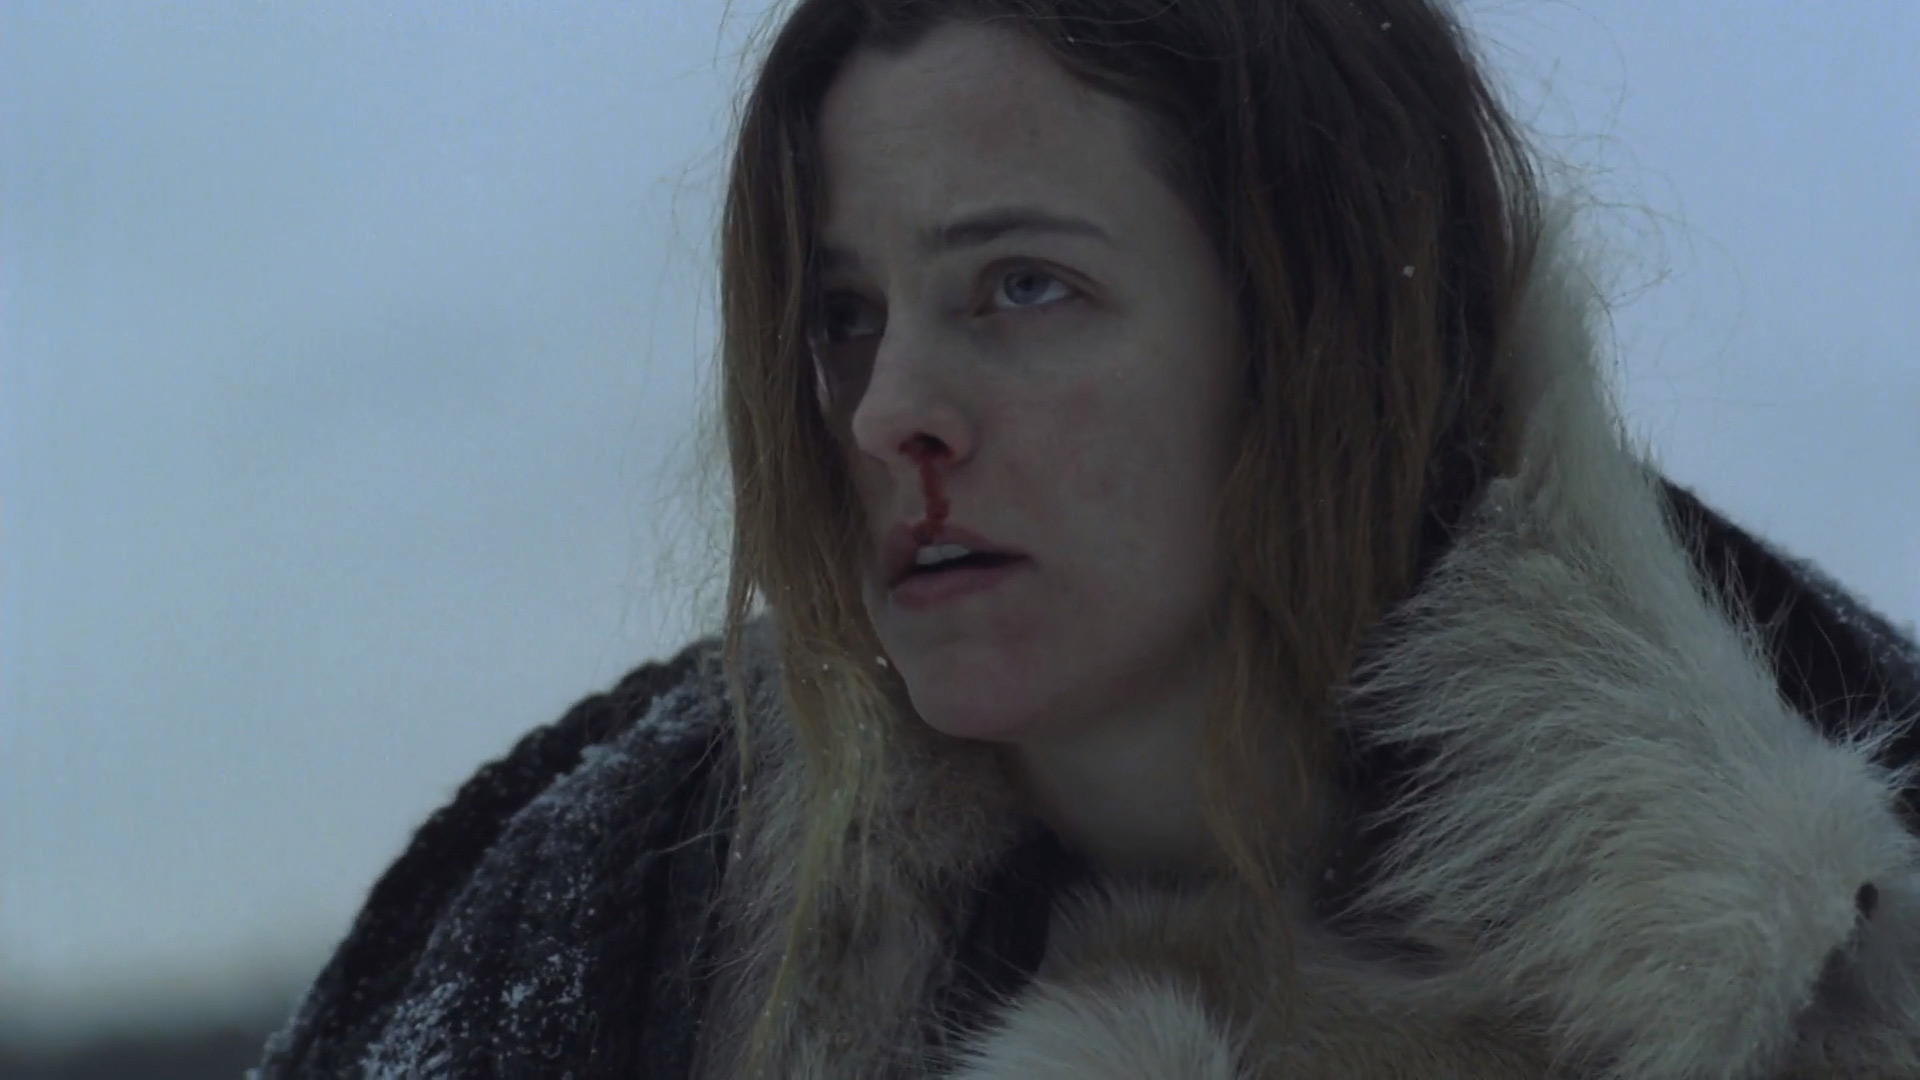 'The Lodge' Review: Fairy-Tale Horror Film Quickly Falls Apart